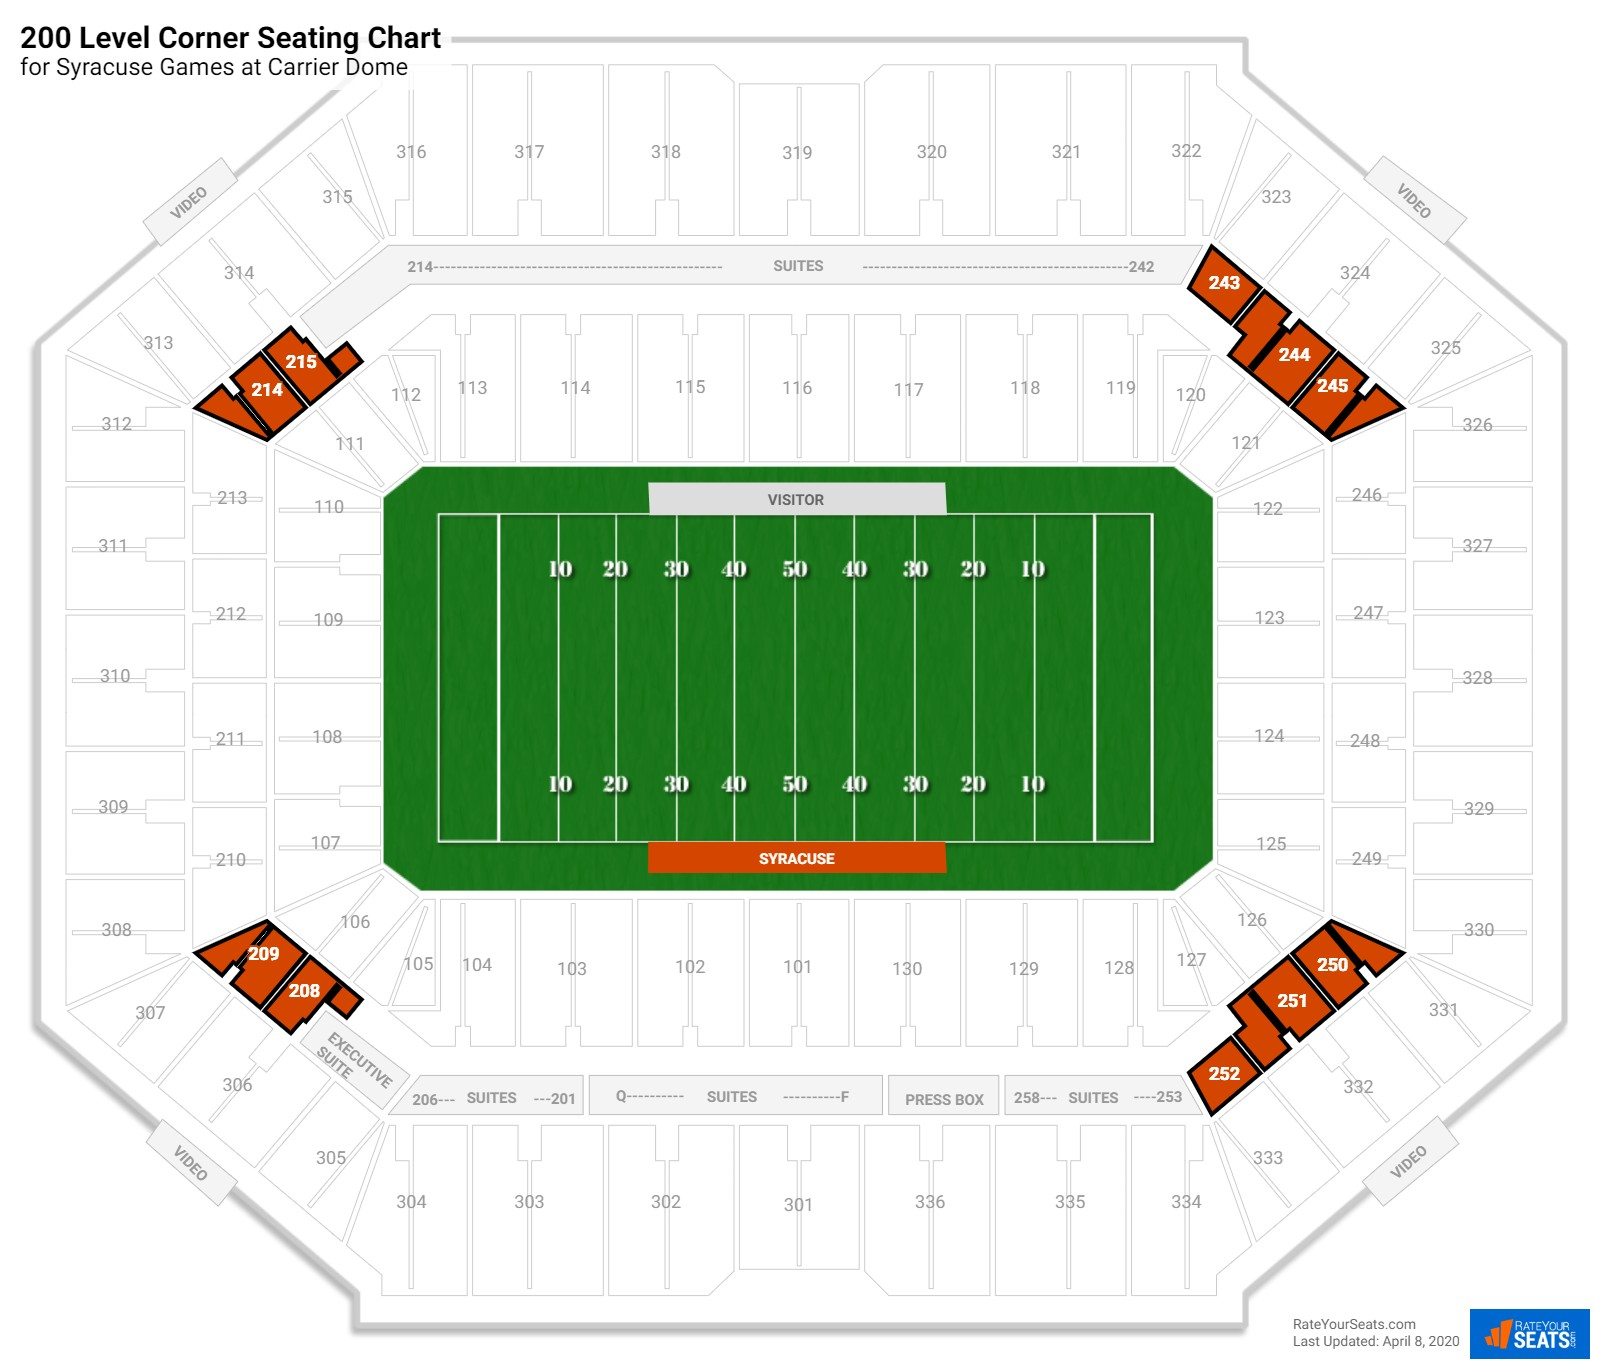 Carrier Dome 200 Level Corner seating chart